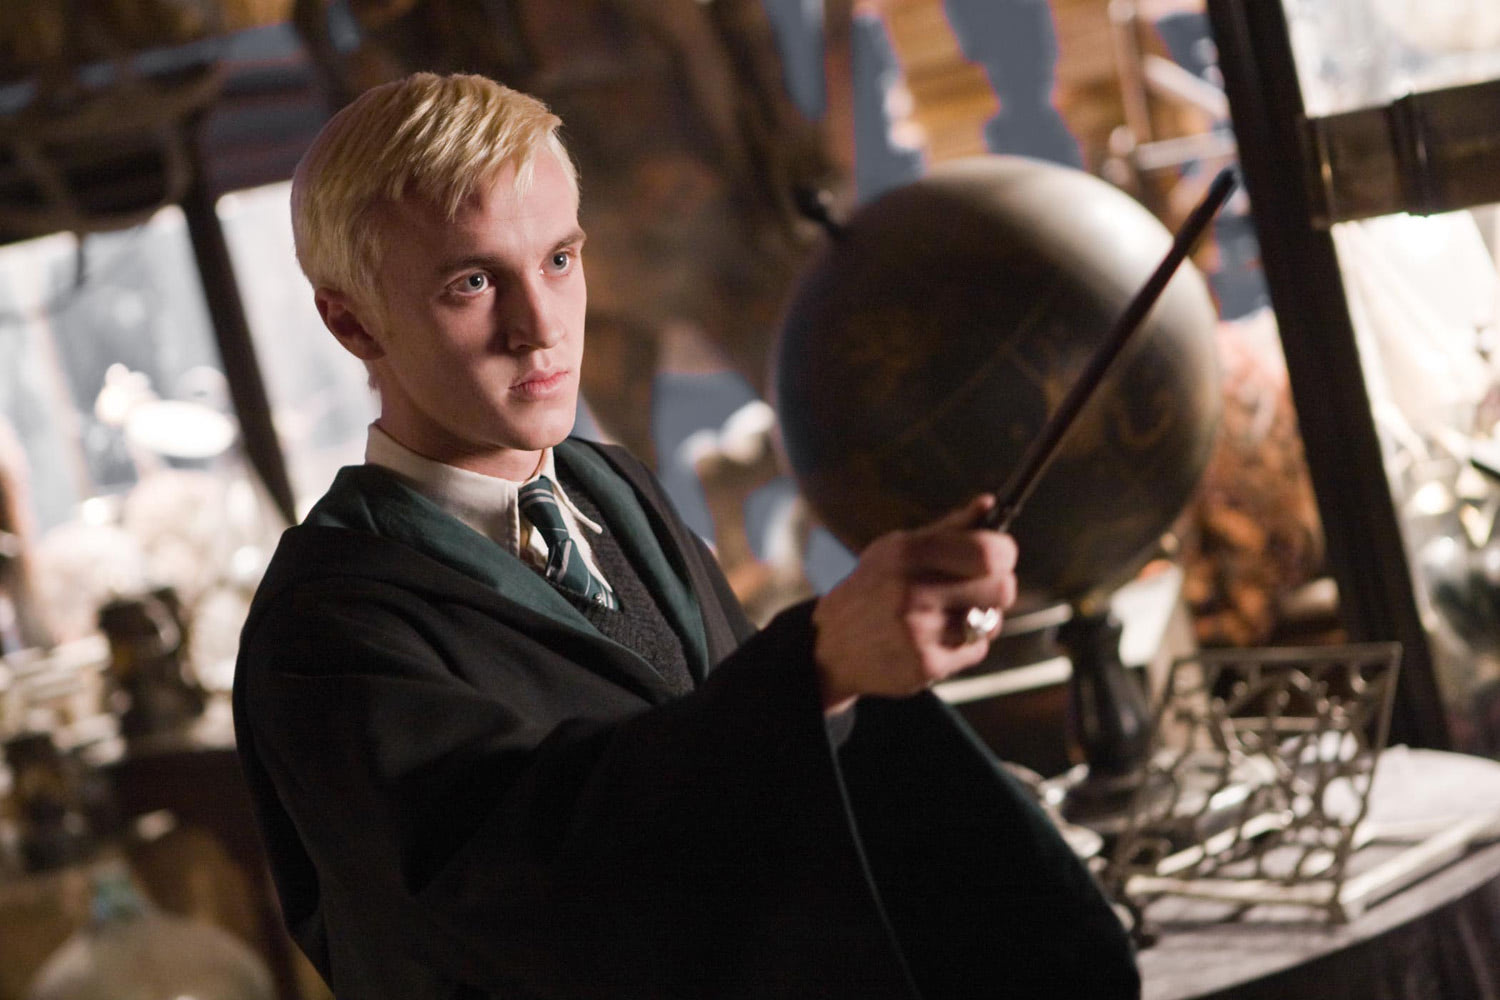 Draco with wand at the ready